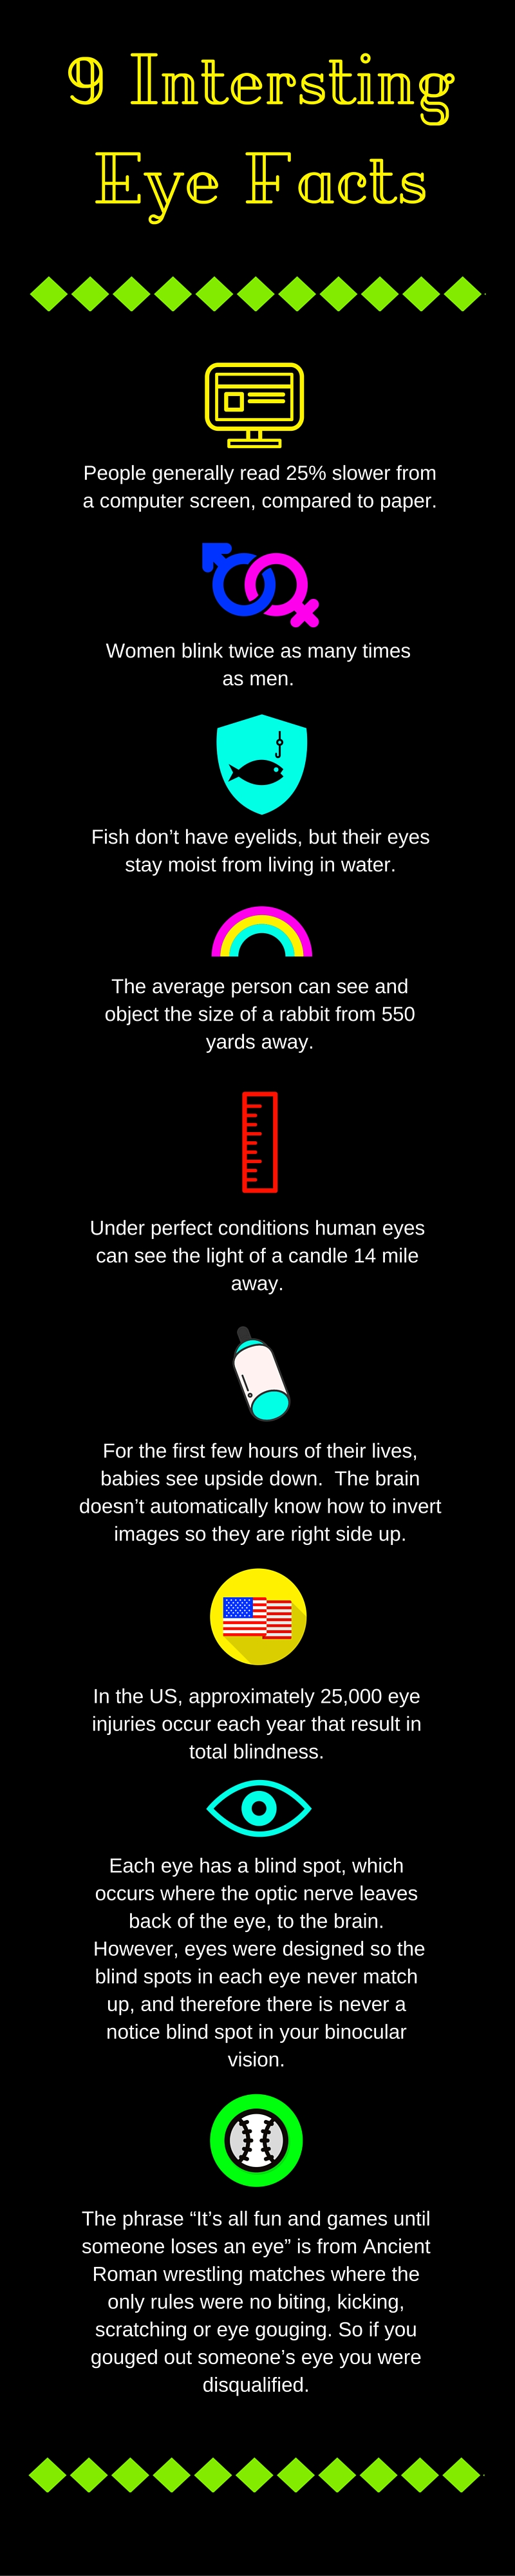 eye facts